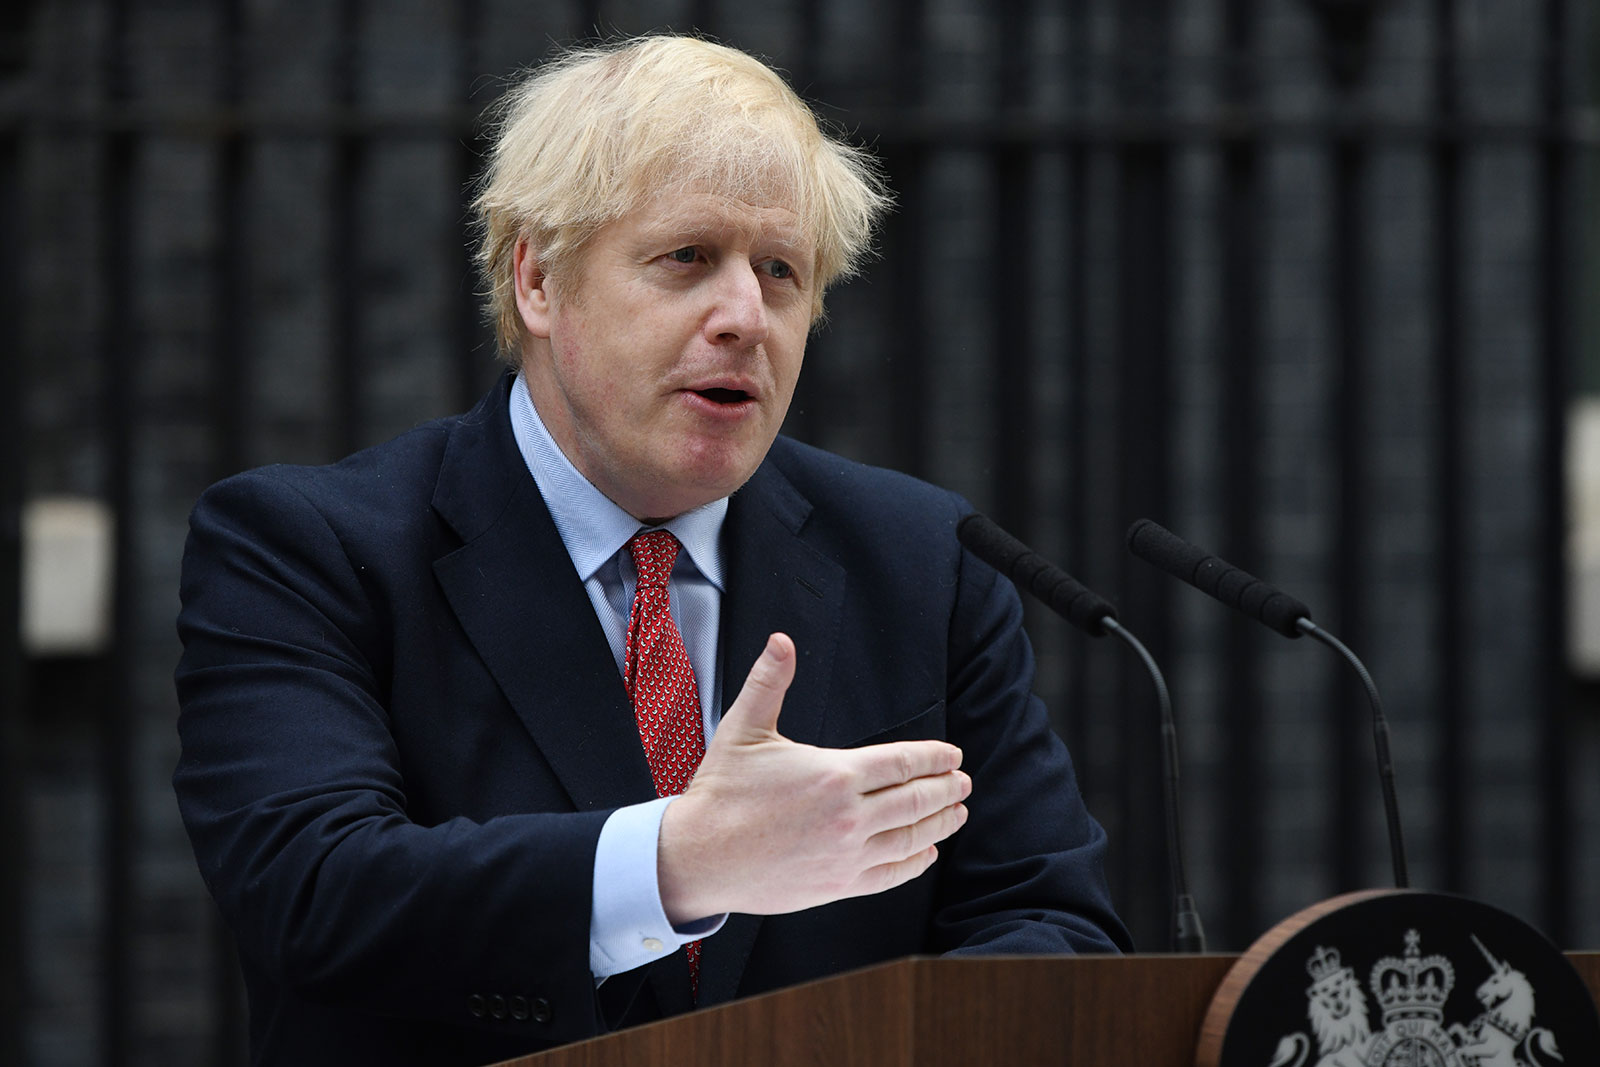 UK Prime Minister Boris Johnson speaks in Downing Street as he returns to work following his recovery from Covid-19 in London on April 27.